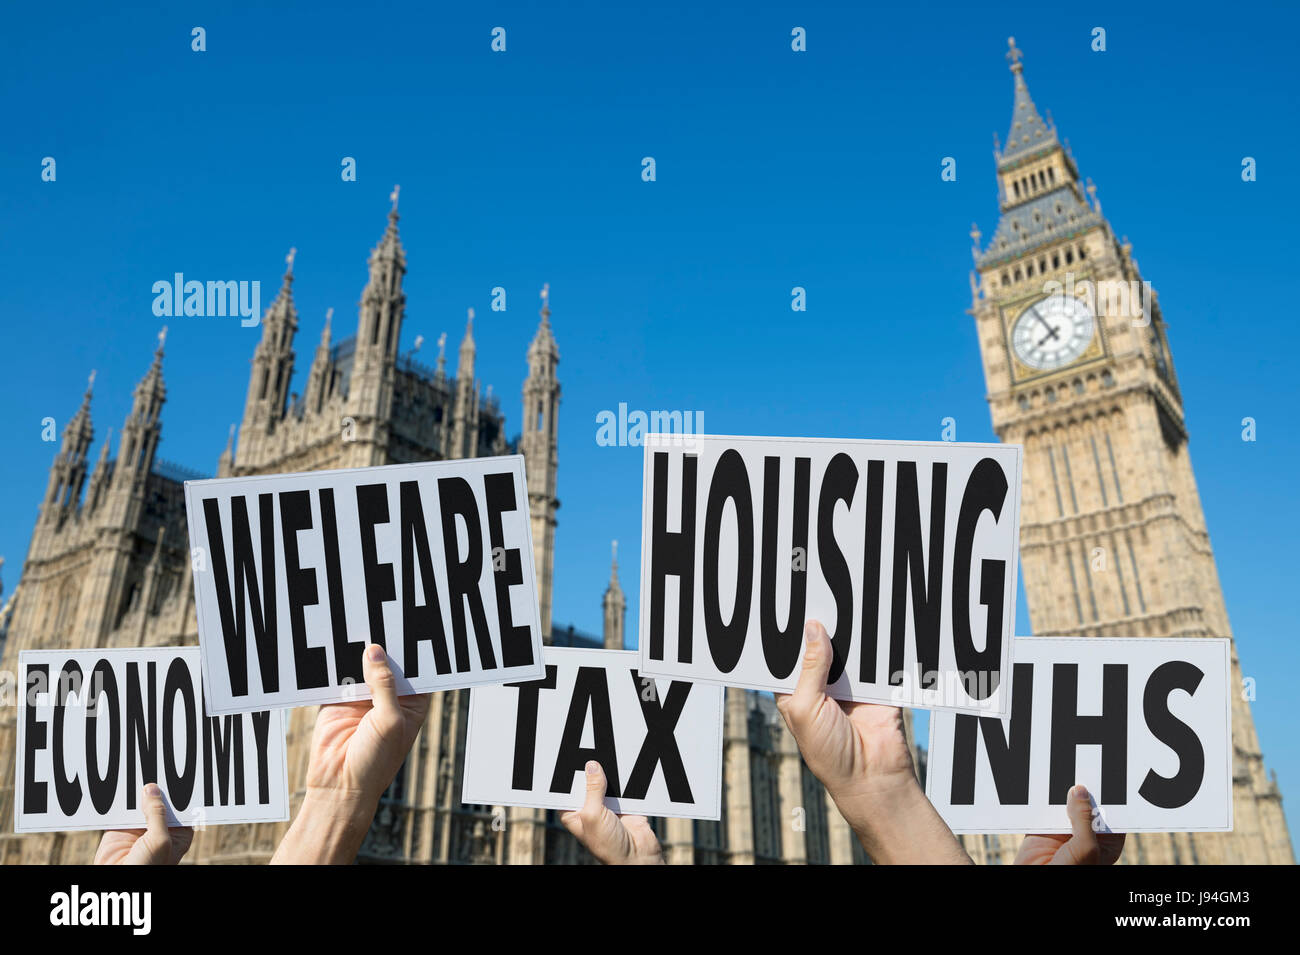 Hands holding election signs protesting modern British social issues of economy, tax, welfare, housing, health at - Stock Image